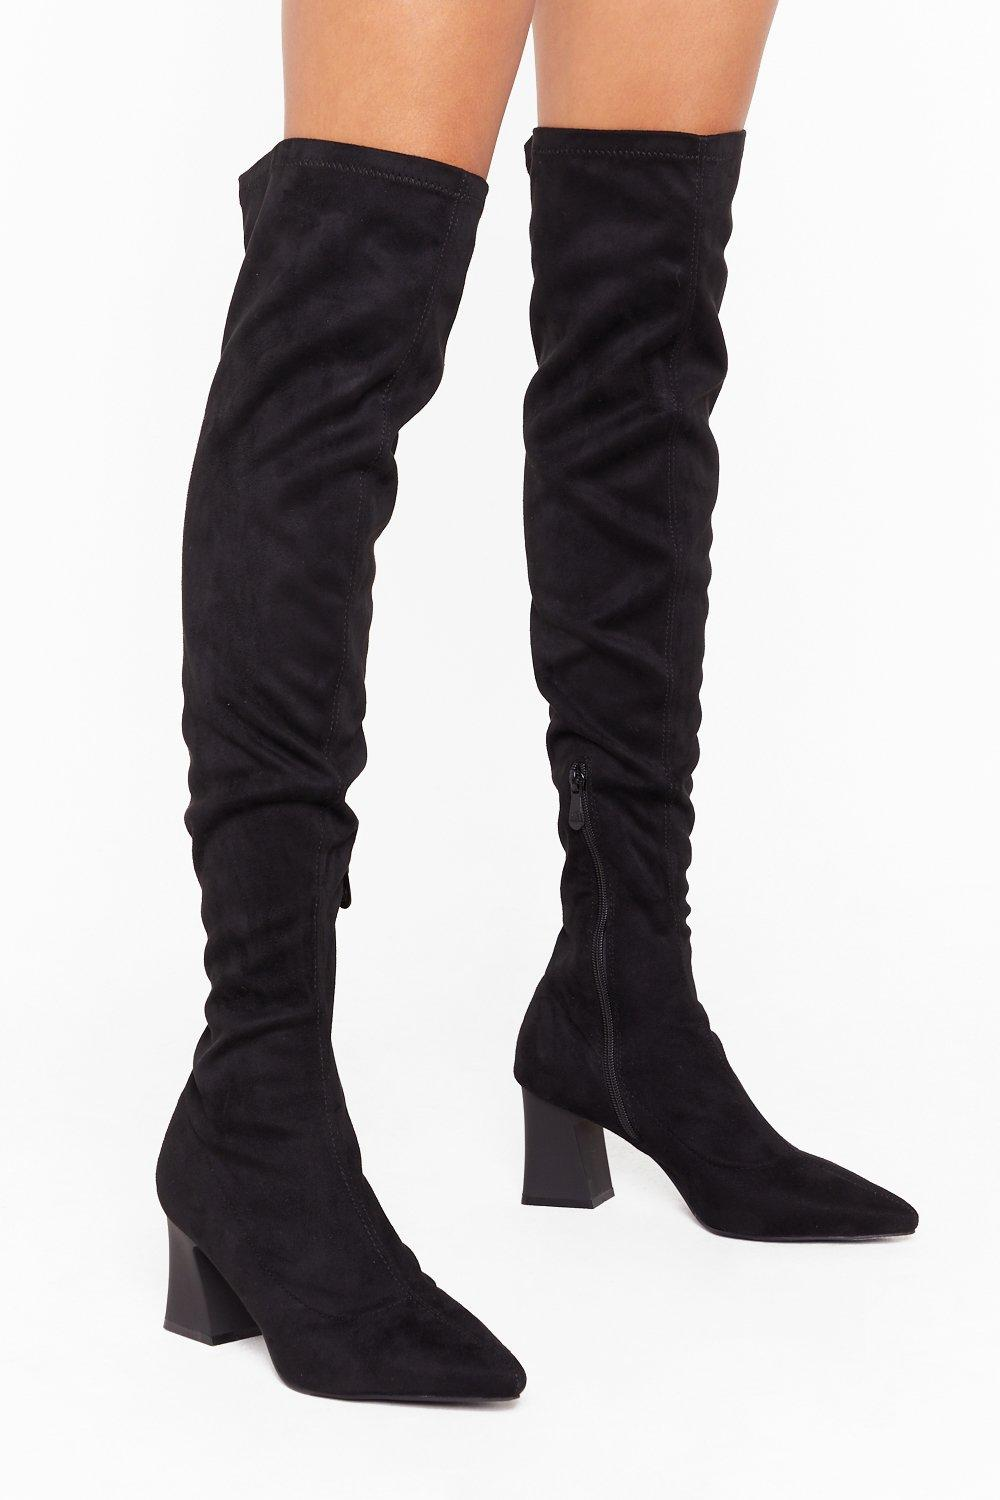 Image of This Ain't Over-the Knee Faux Suede Boots